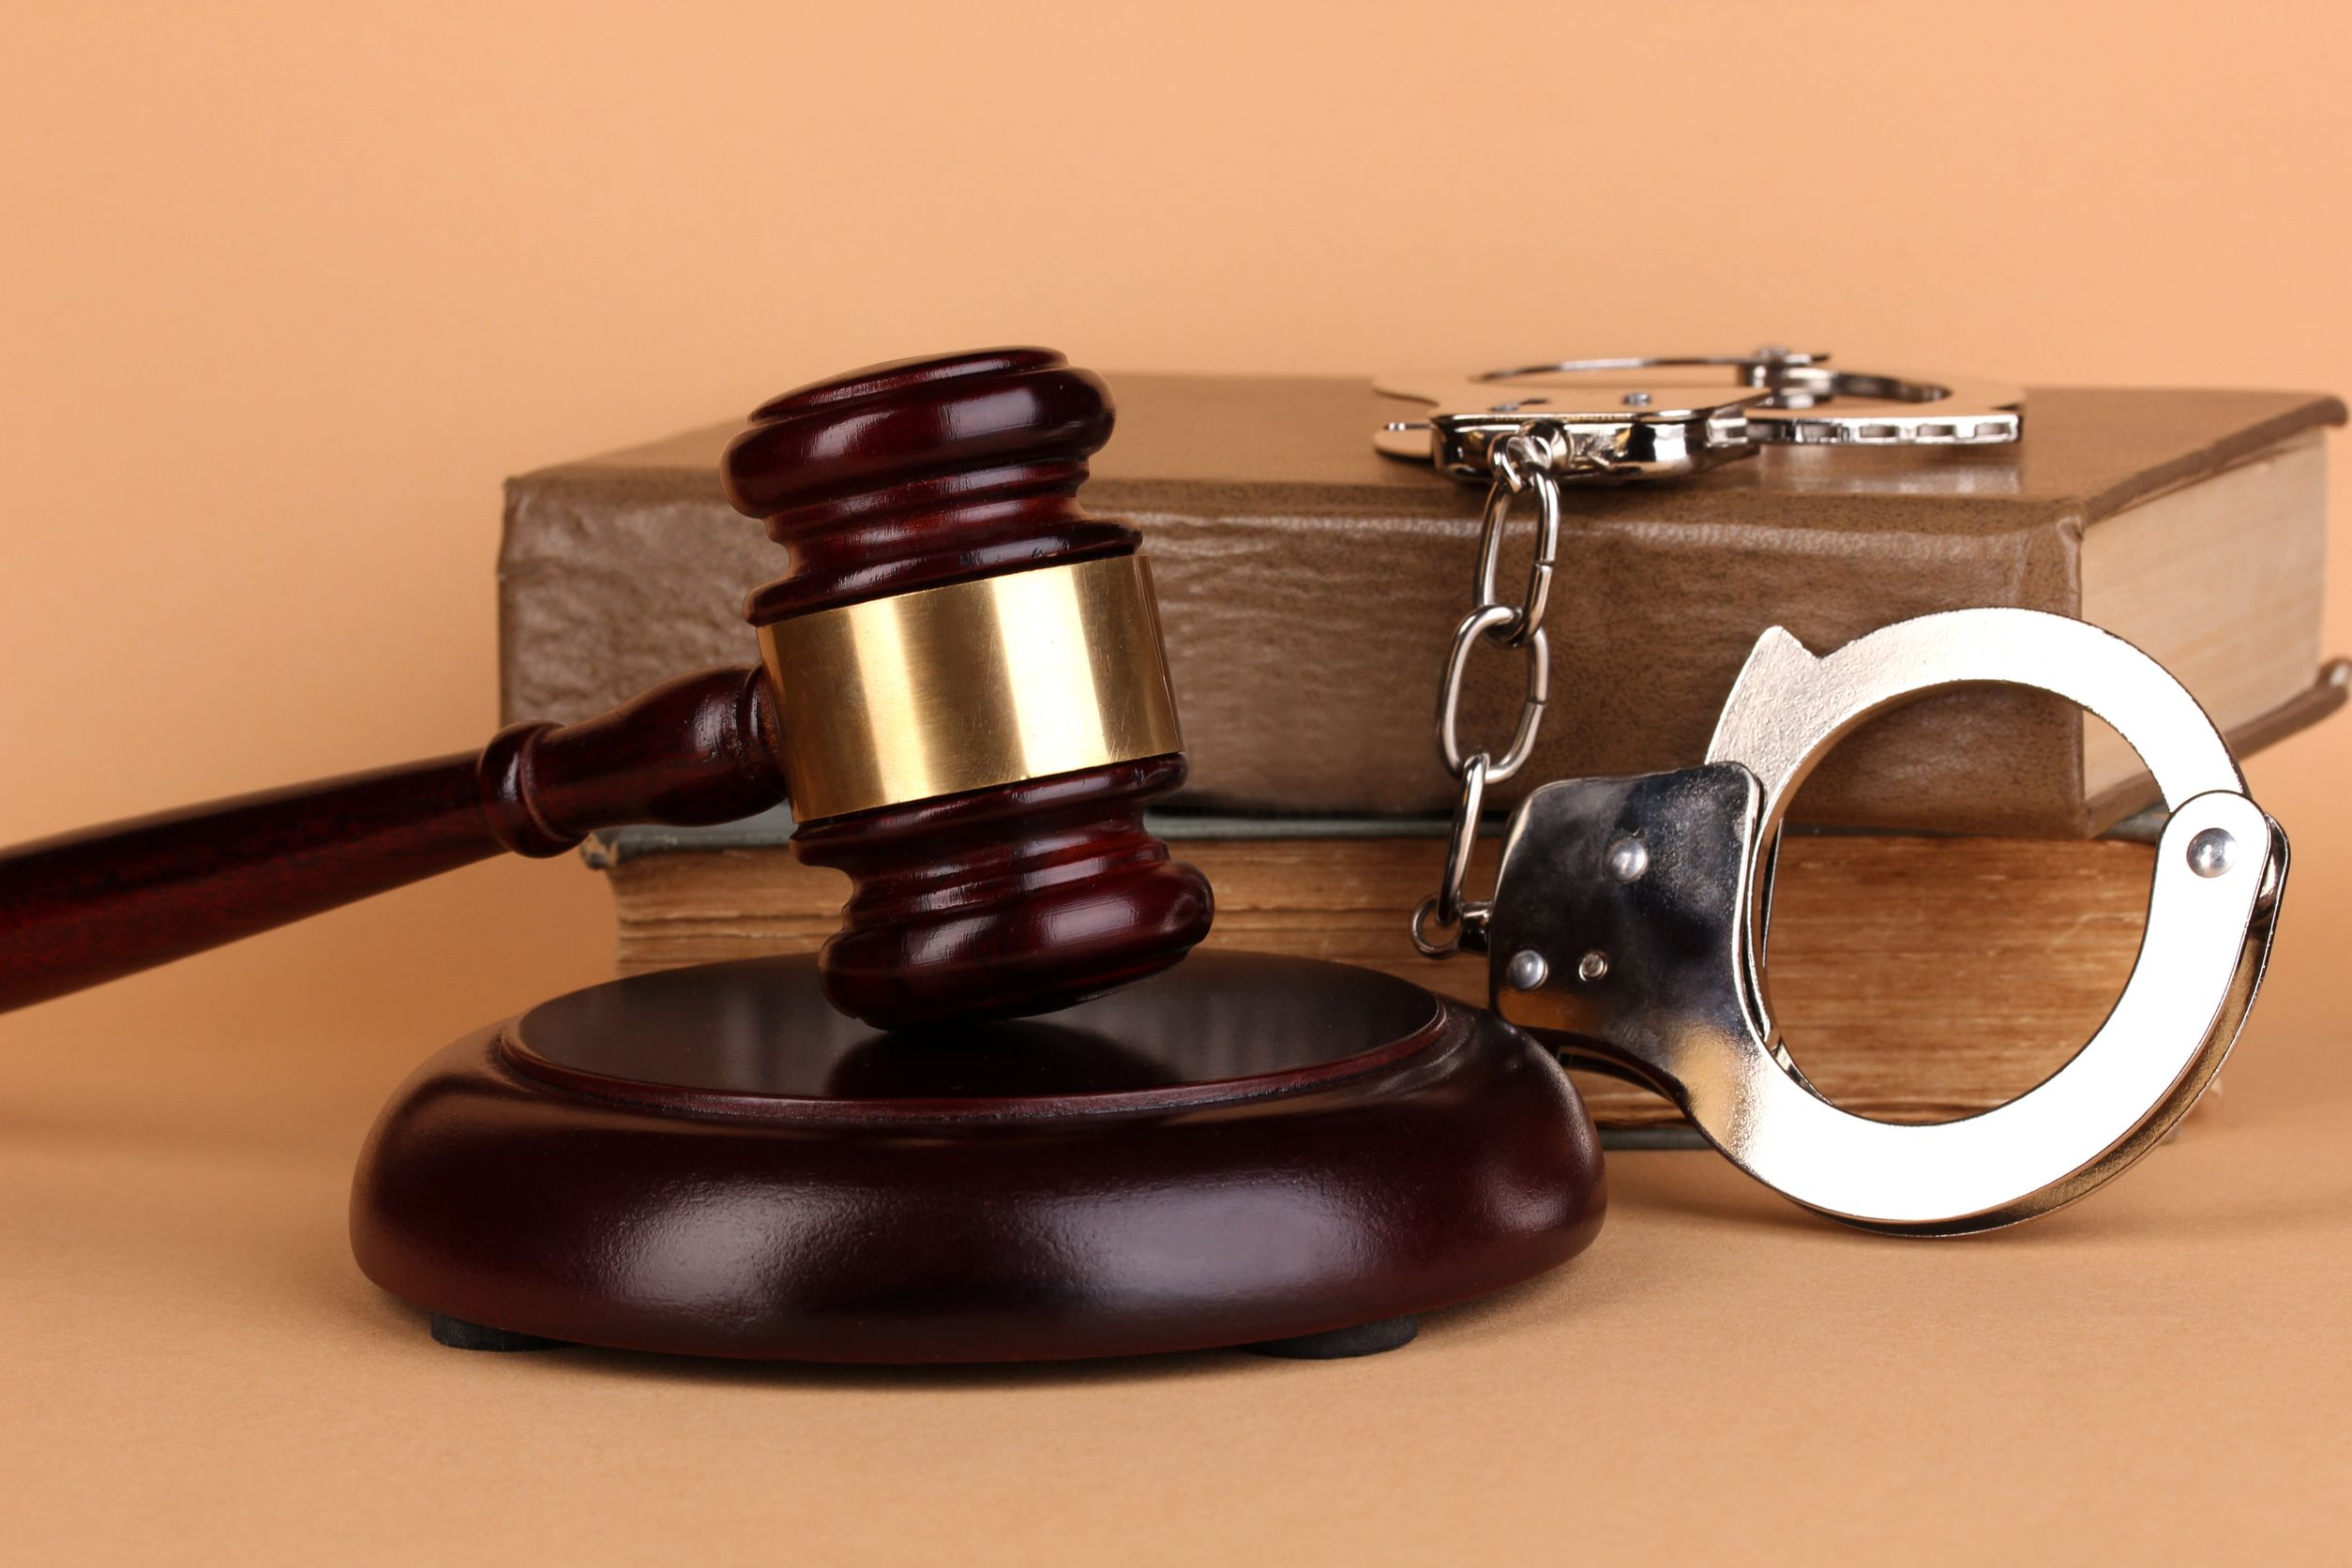 Do You Understand All of the Criminal Laws in Phoenix, Arizona?